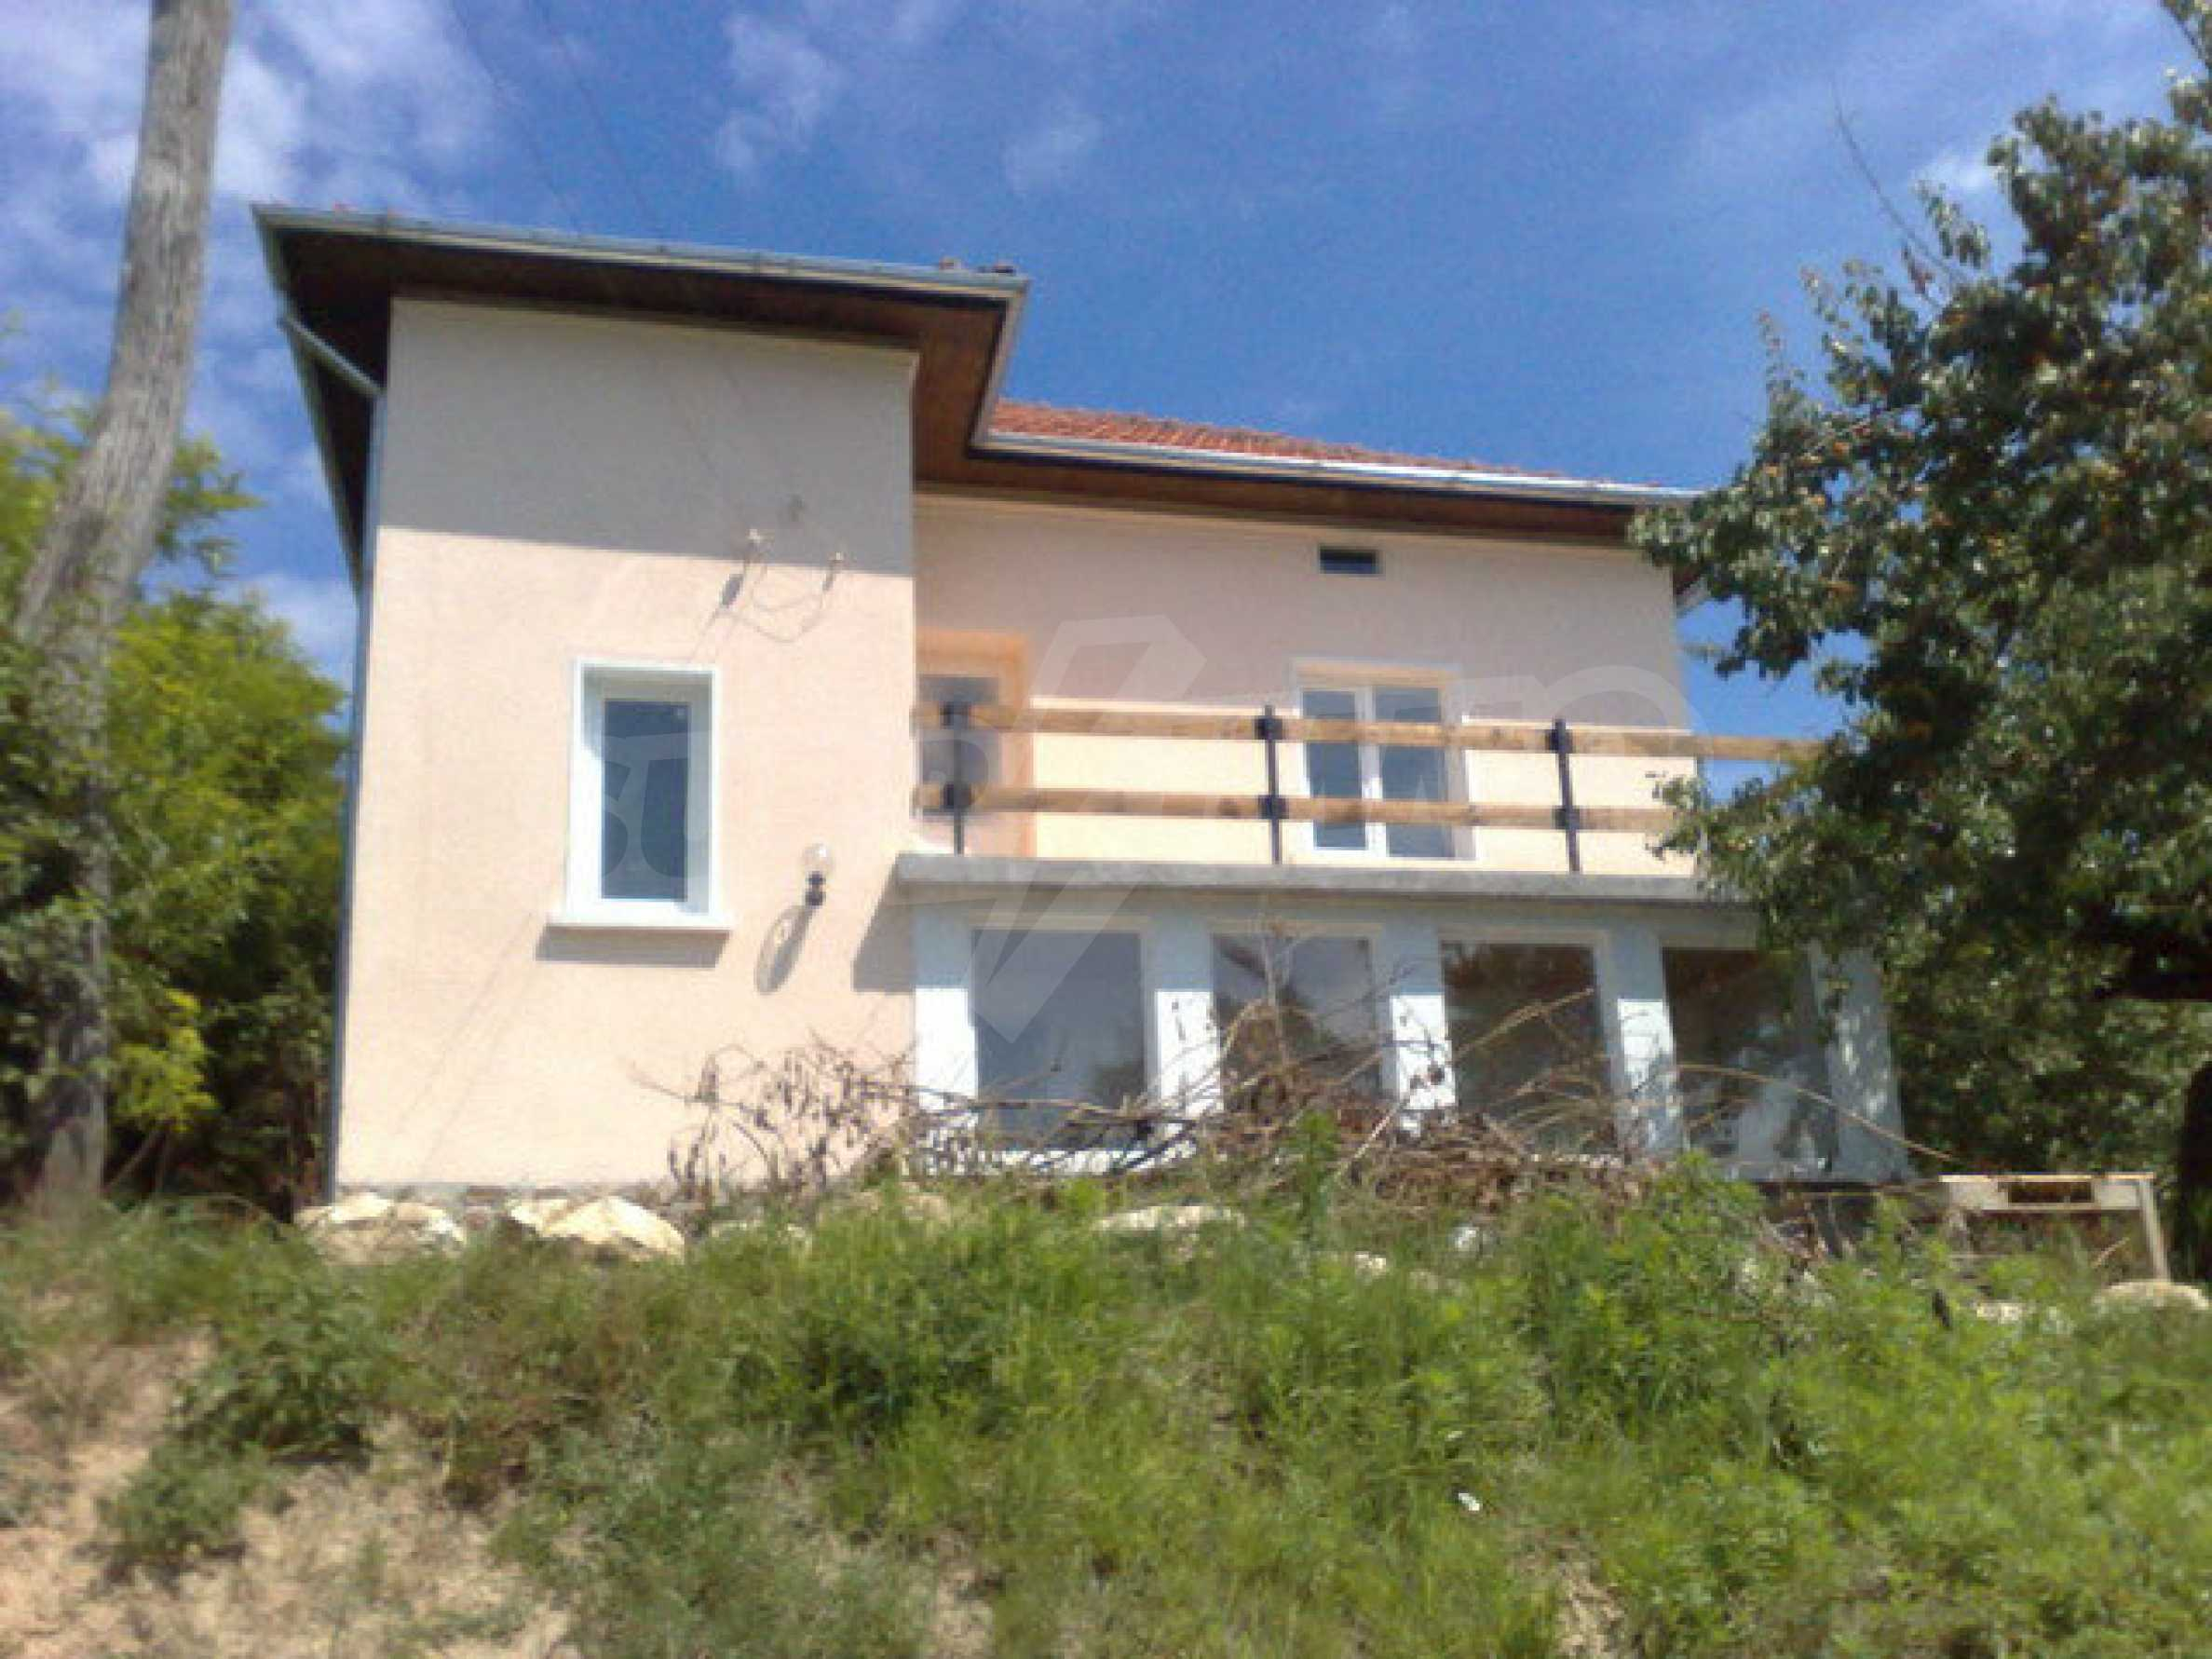 Fully renovated house with large garden and views of the Danube